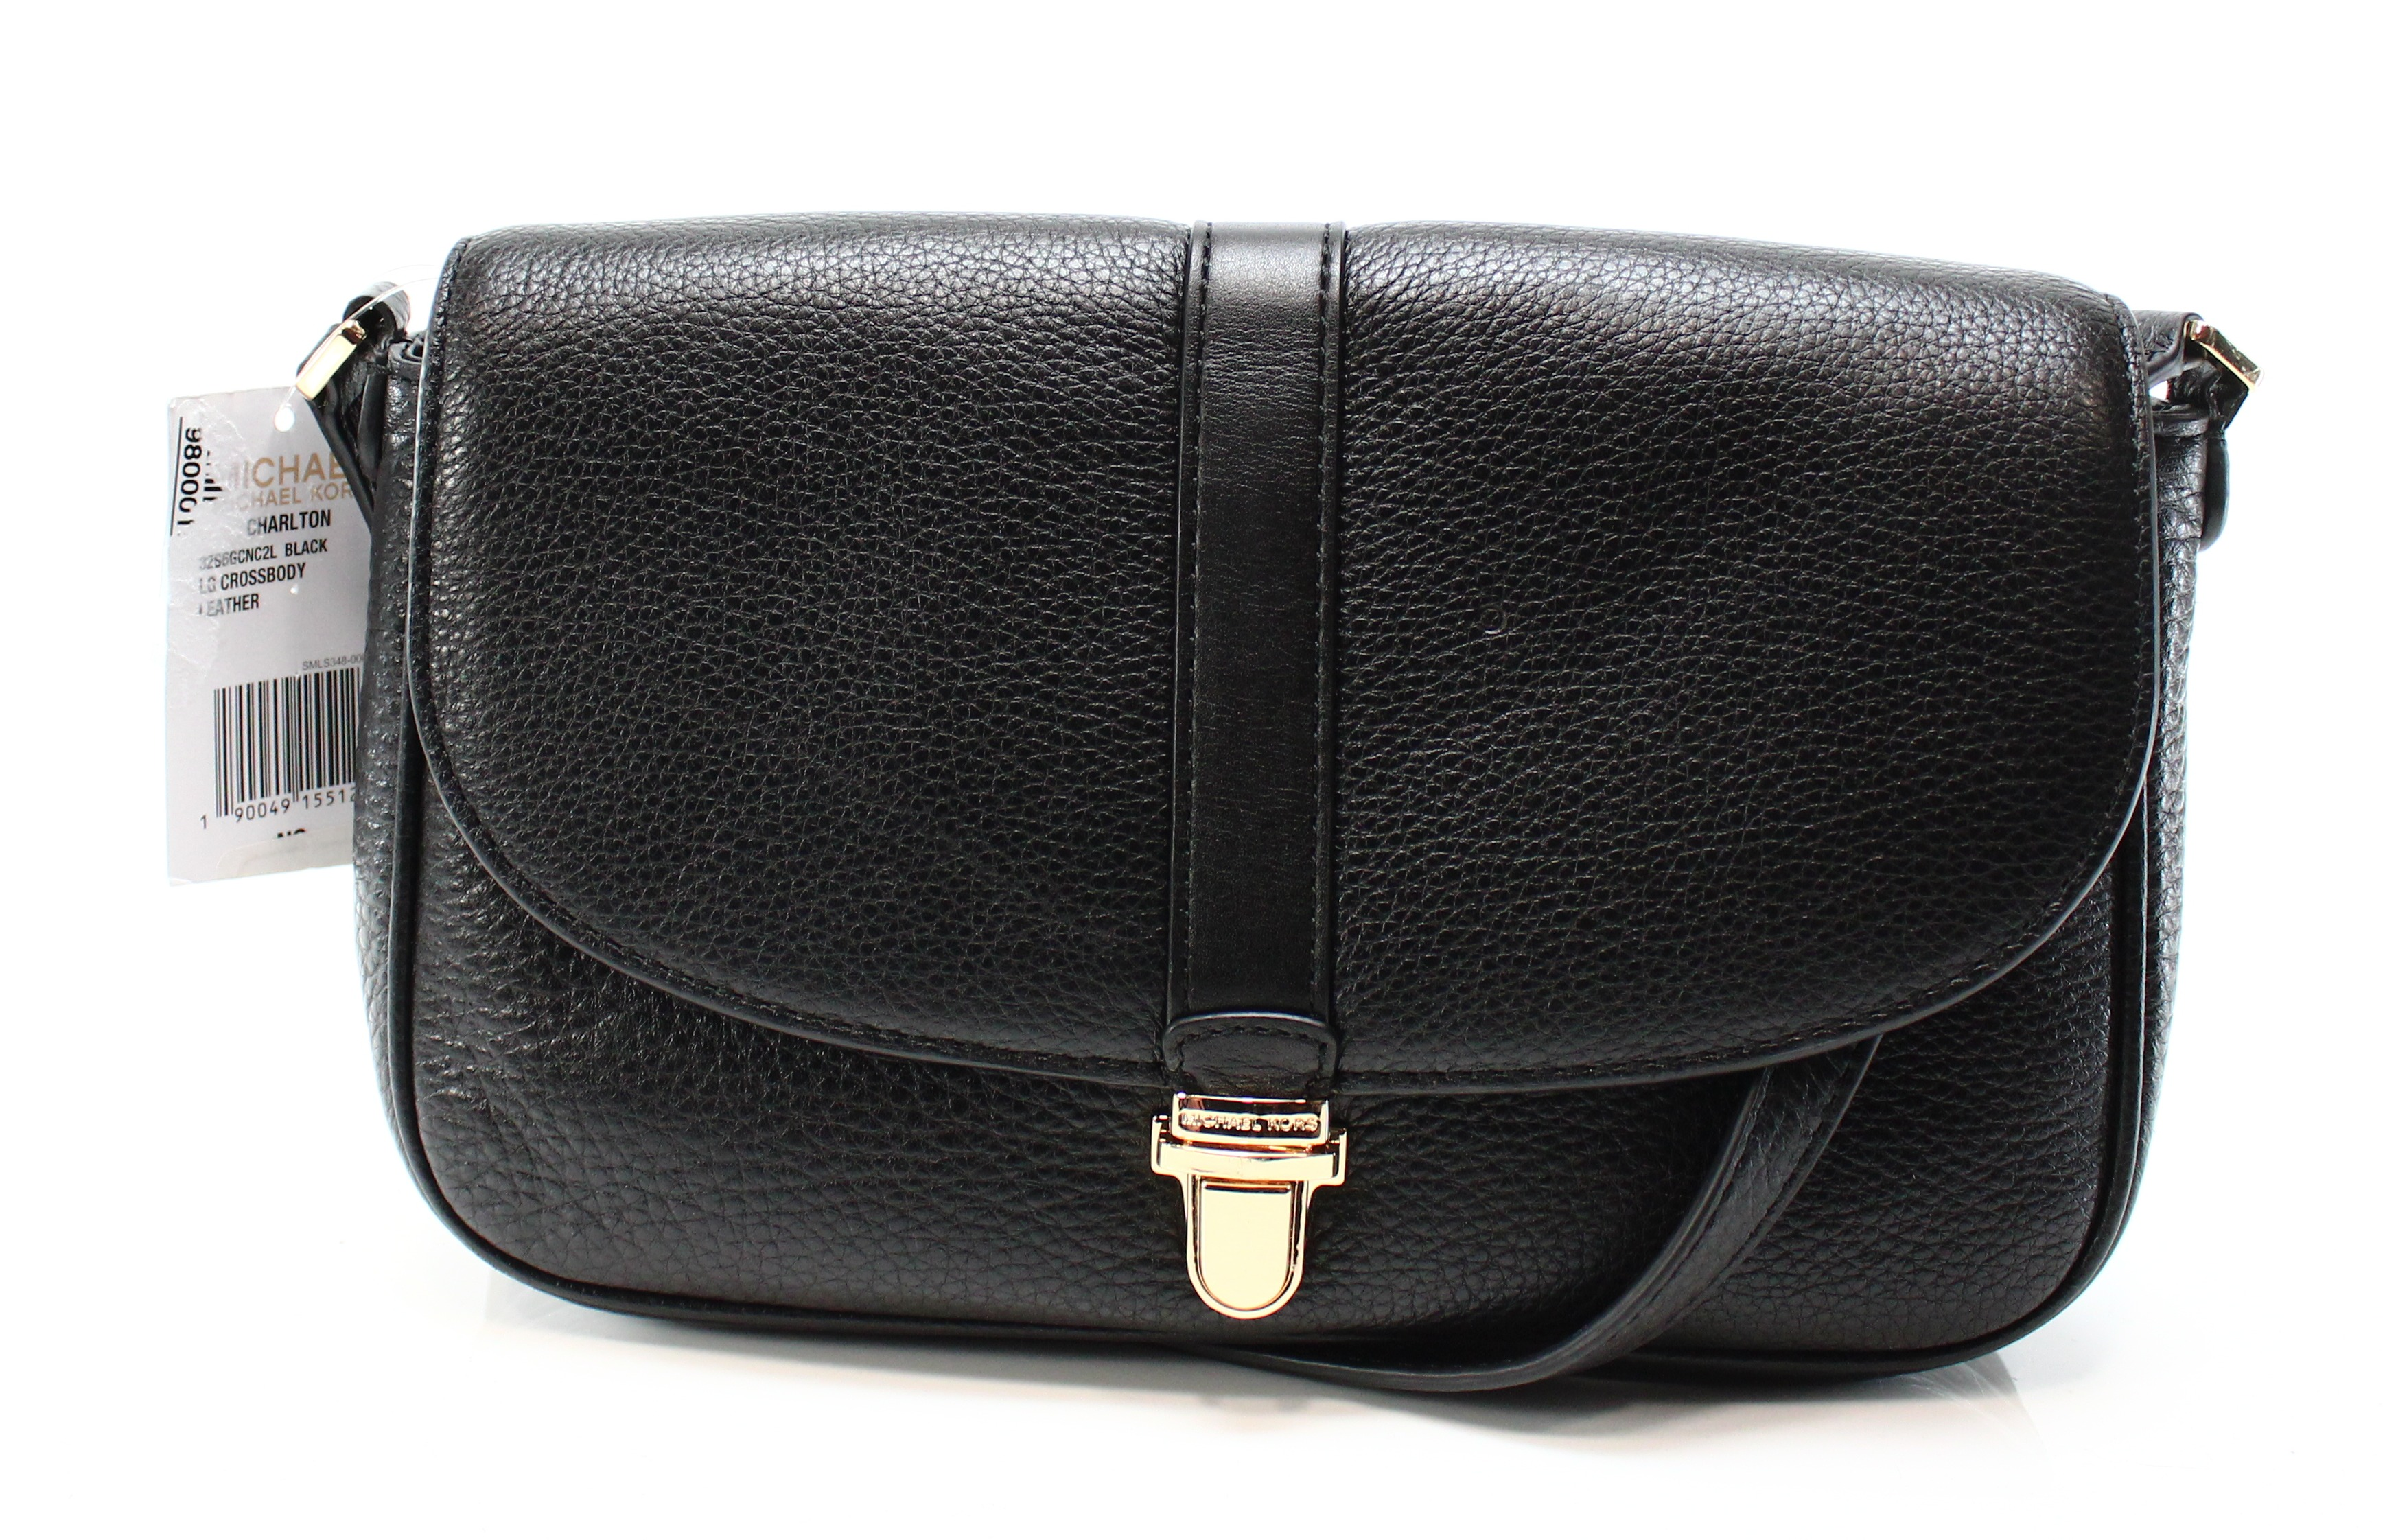 b55e47f41bf72b Michael Kors Black Leather Crossbody Purse | Stanford Center for ...